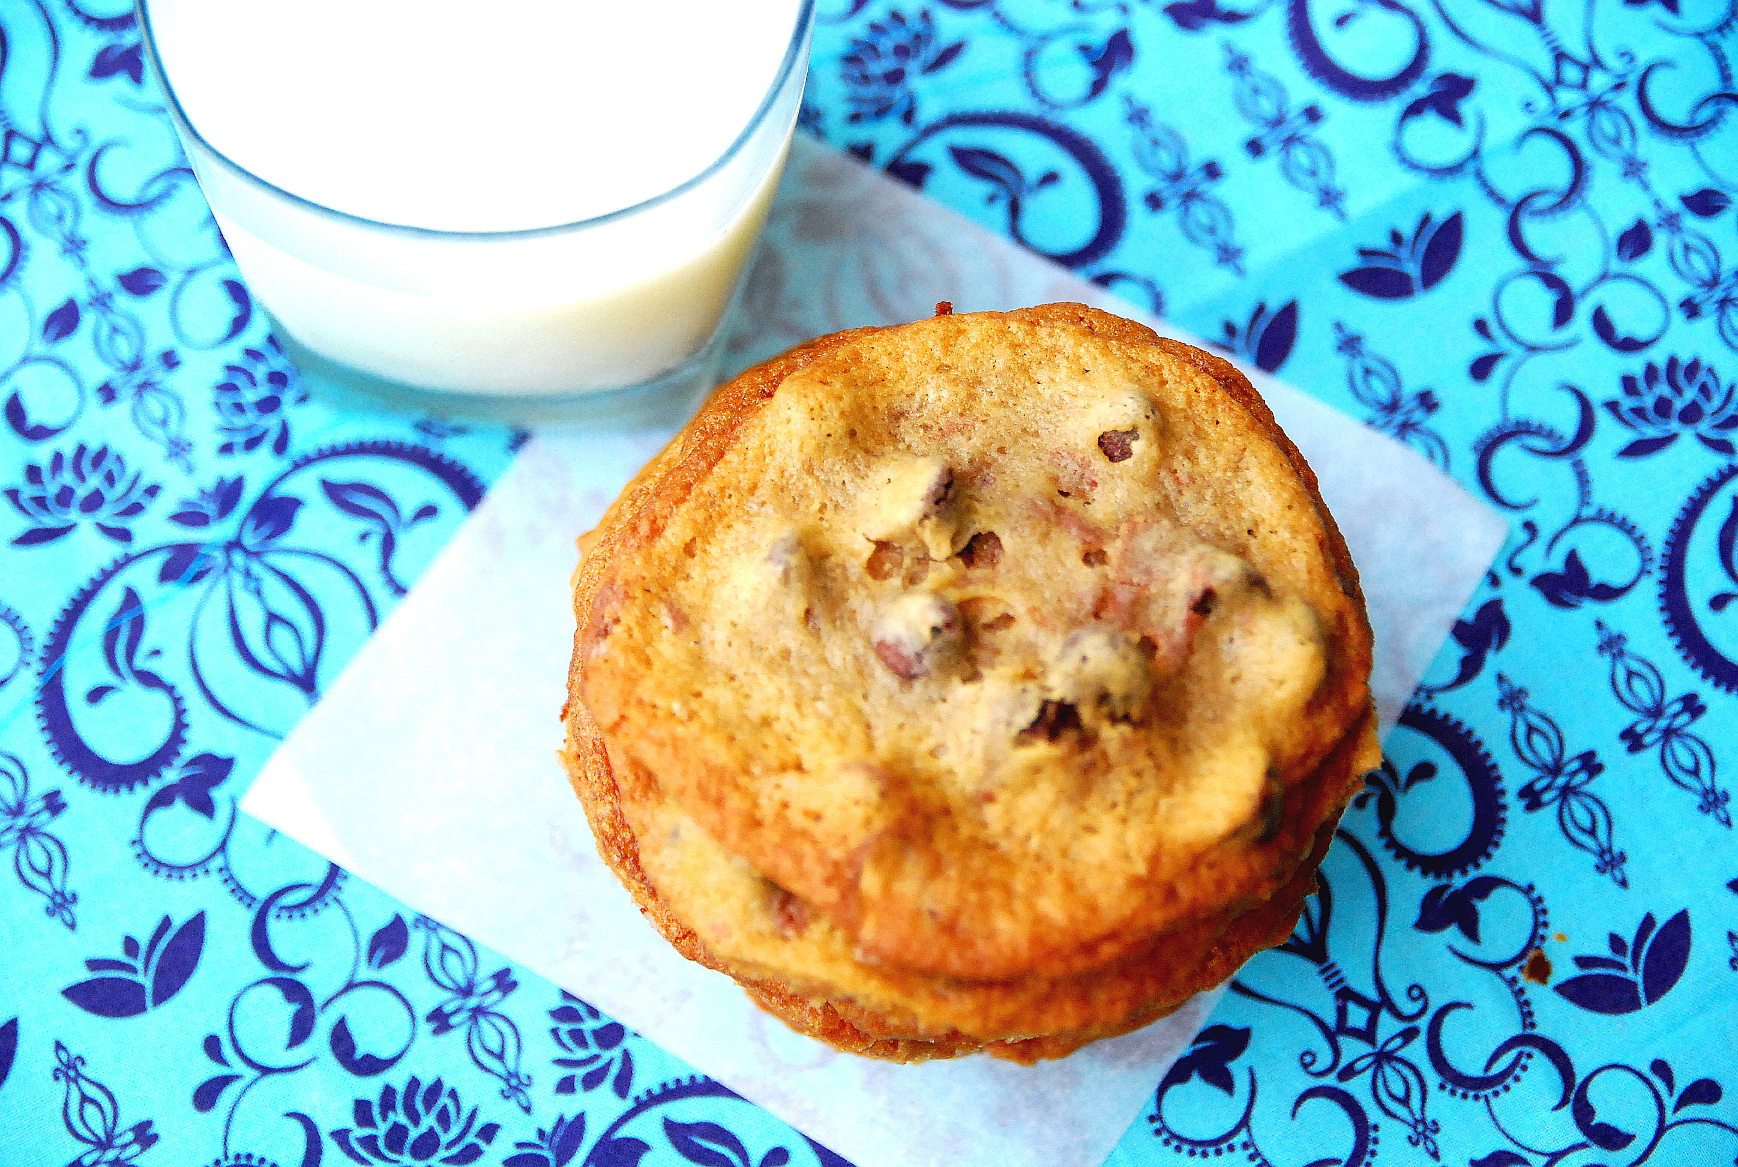 Malt Shoppe Chocolate Chip Cookies